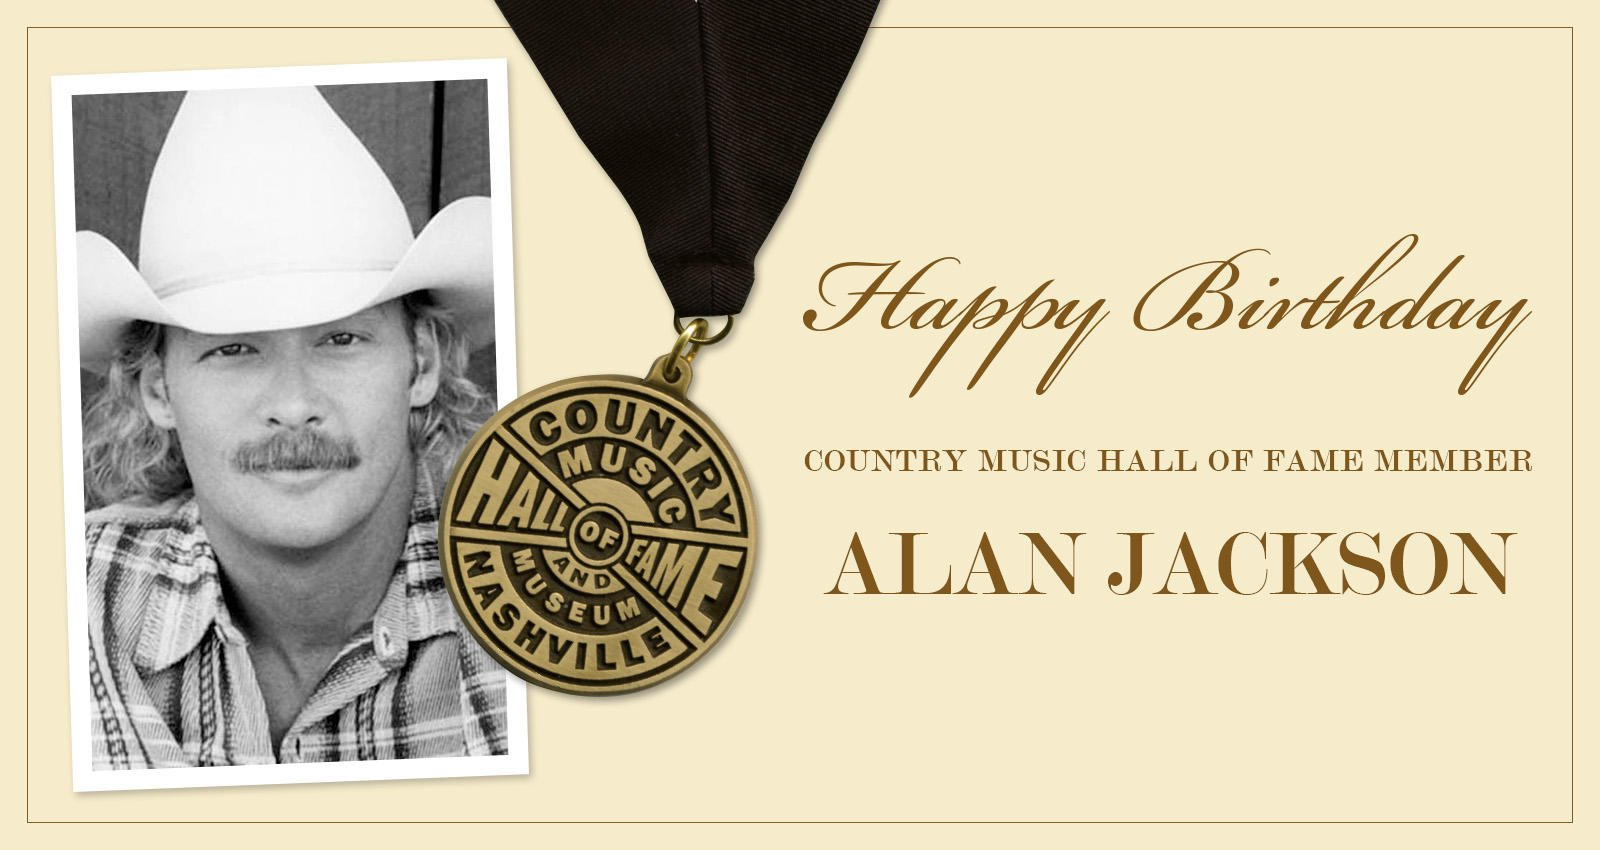 Help us wish Country Music Hall of Fame member Alan Jackson ( a very Happy Birthday!